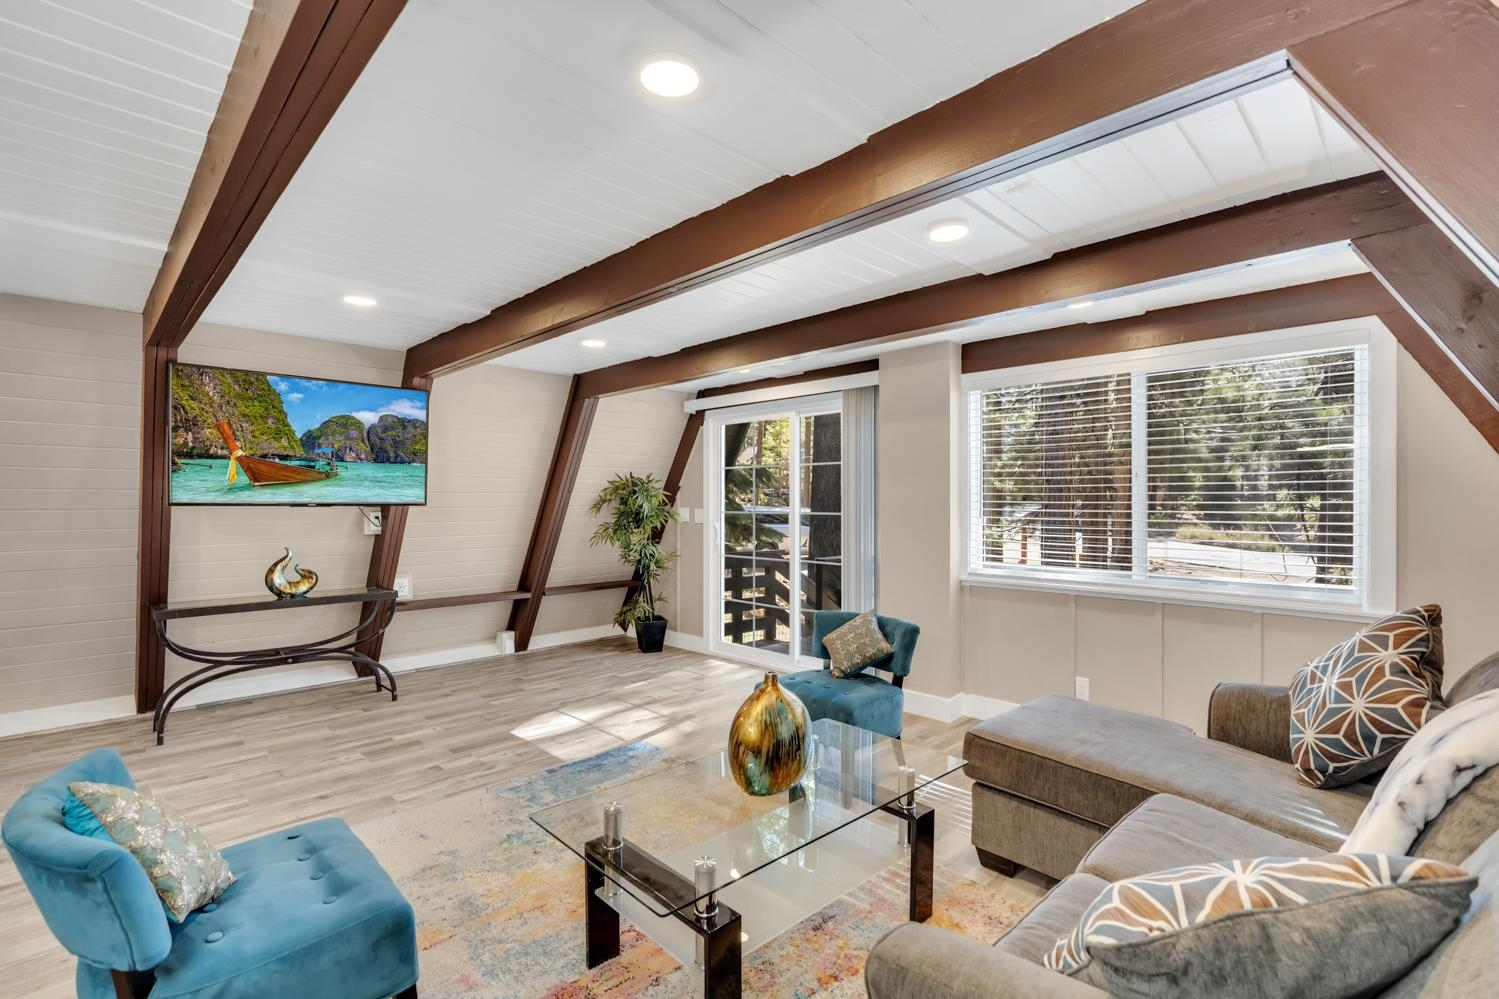 Image for 8325 Speckled Avenue, Kings Beach, CA 96143